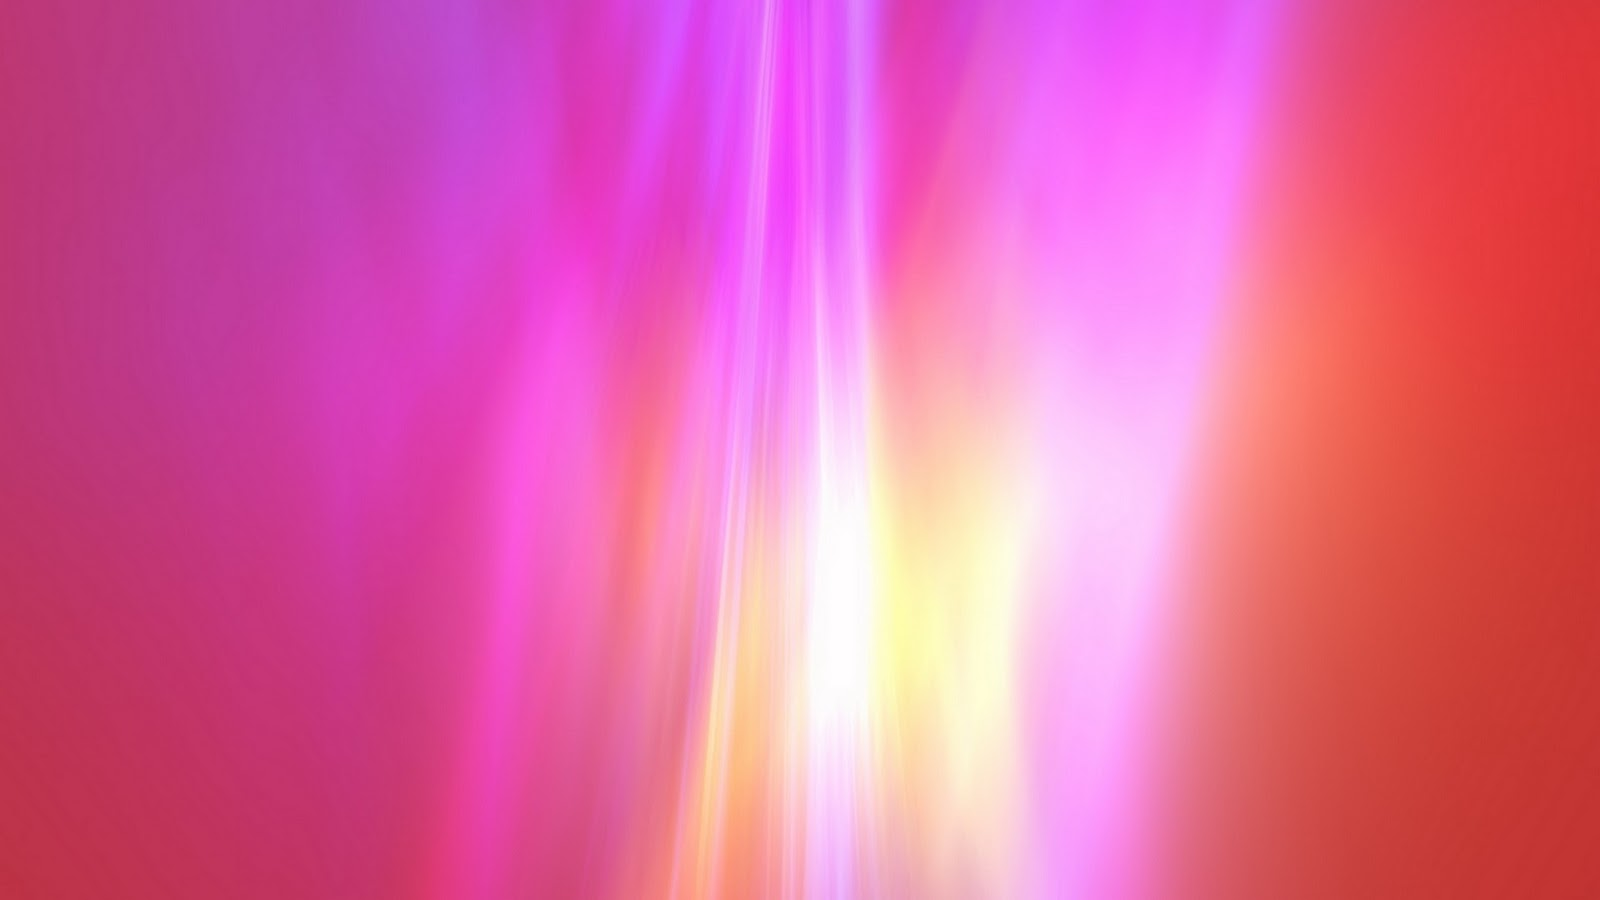 abstracte achtergronden wallpapers 26jpg - photo #16